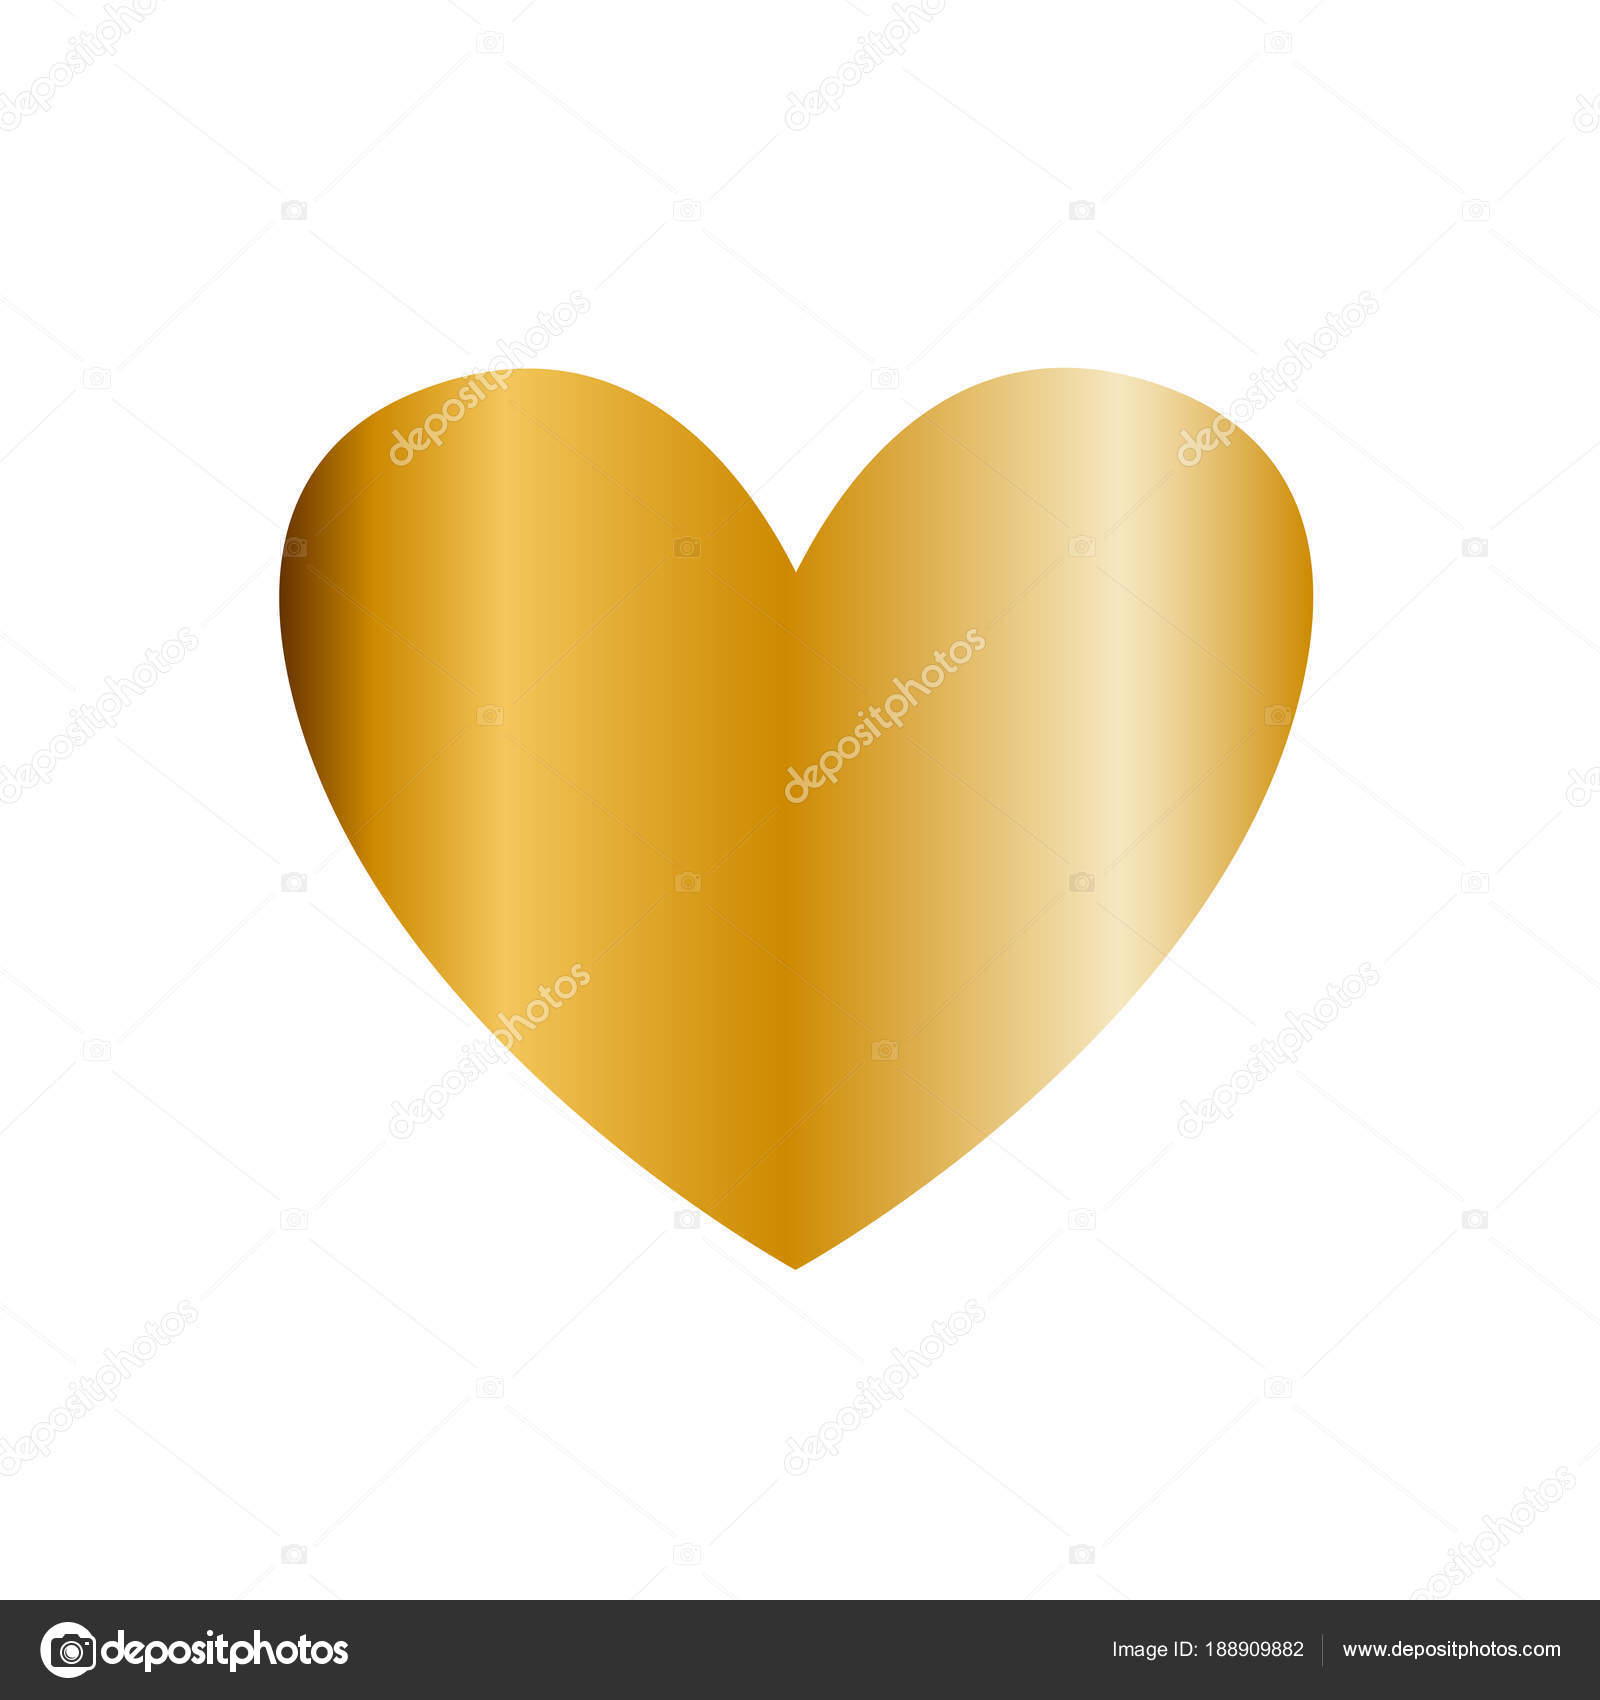 Vector Golden Heart Icon Clip Art Isolated On White Background